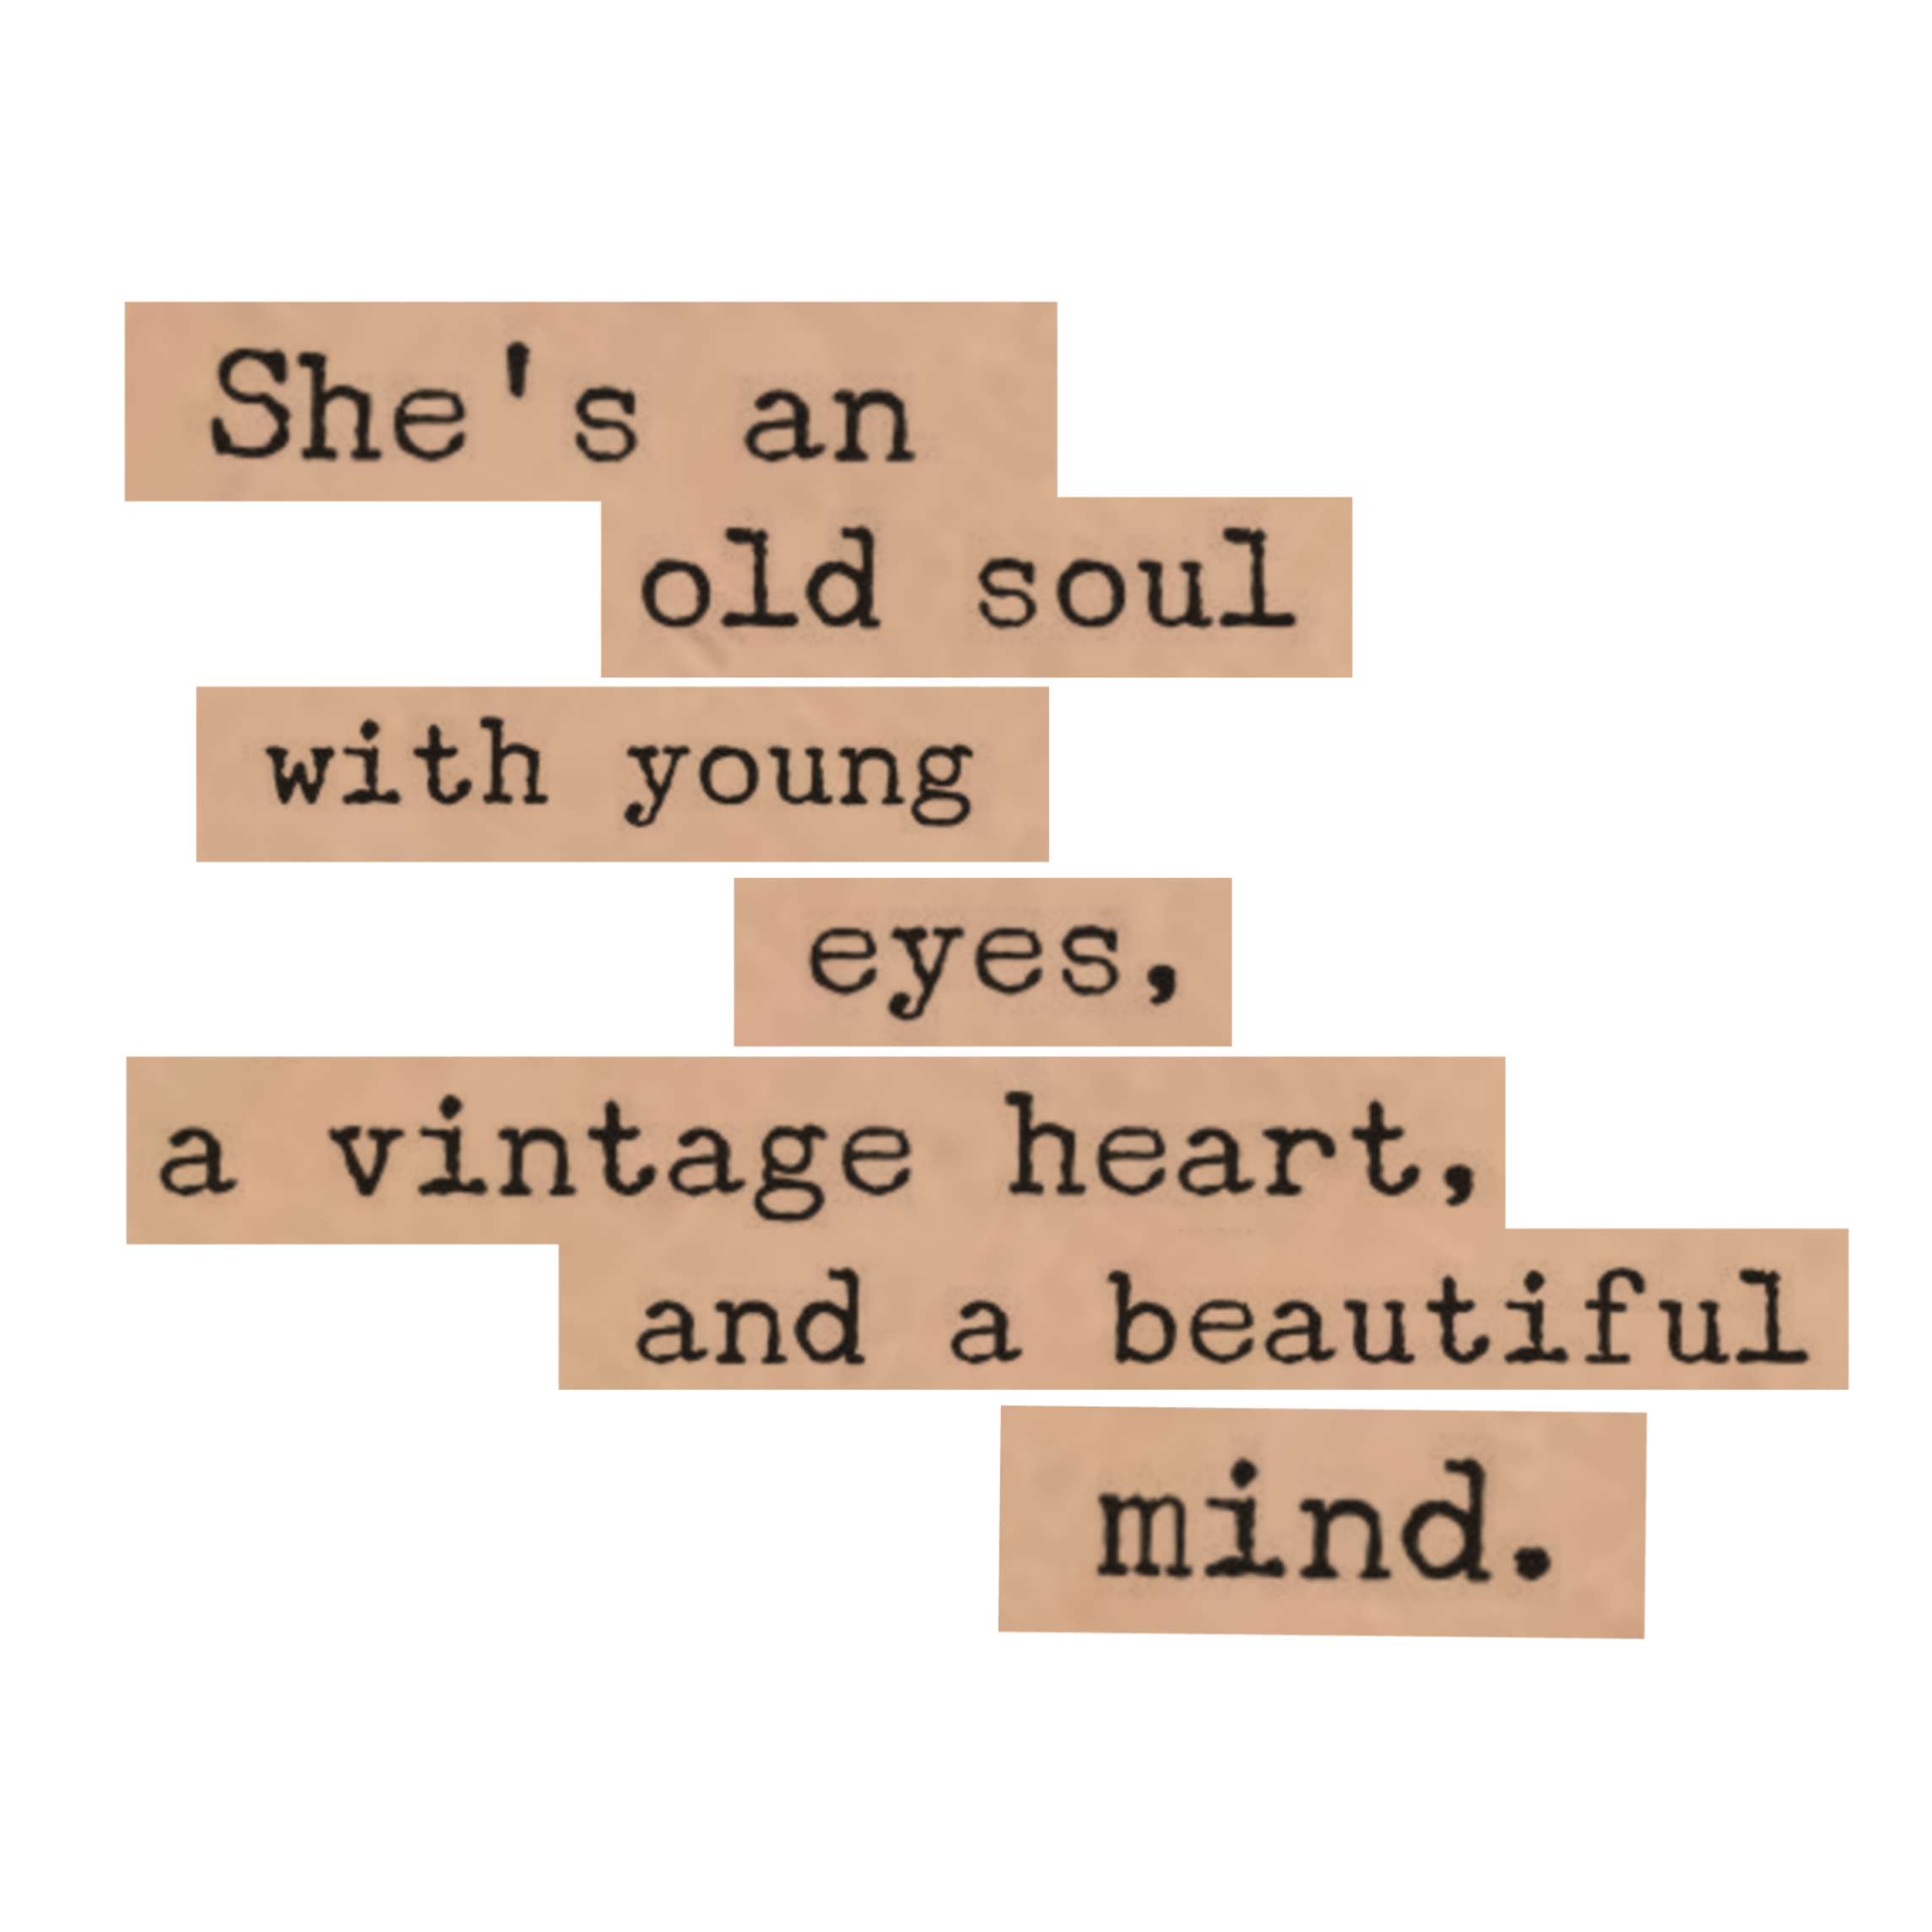 Freetoedit Freetoedit Quote Text Aesthetic Vintage Paper Book Words Subtitle Textaesthetic Aest In 2020 Brown Aesthetic Quote Aesthetic Aesthetic Stickers